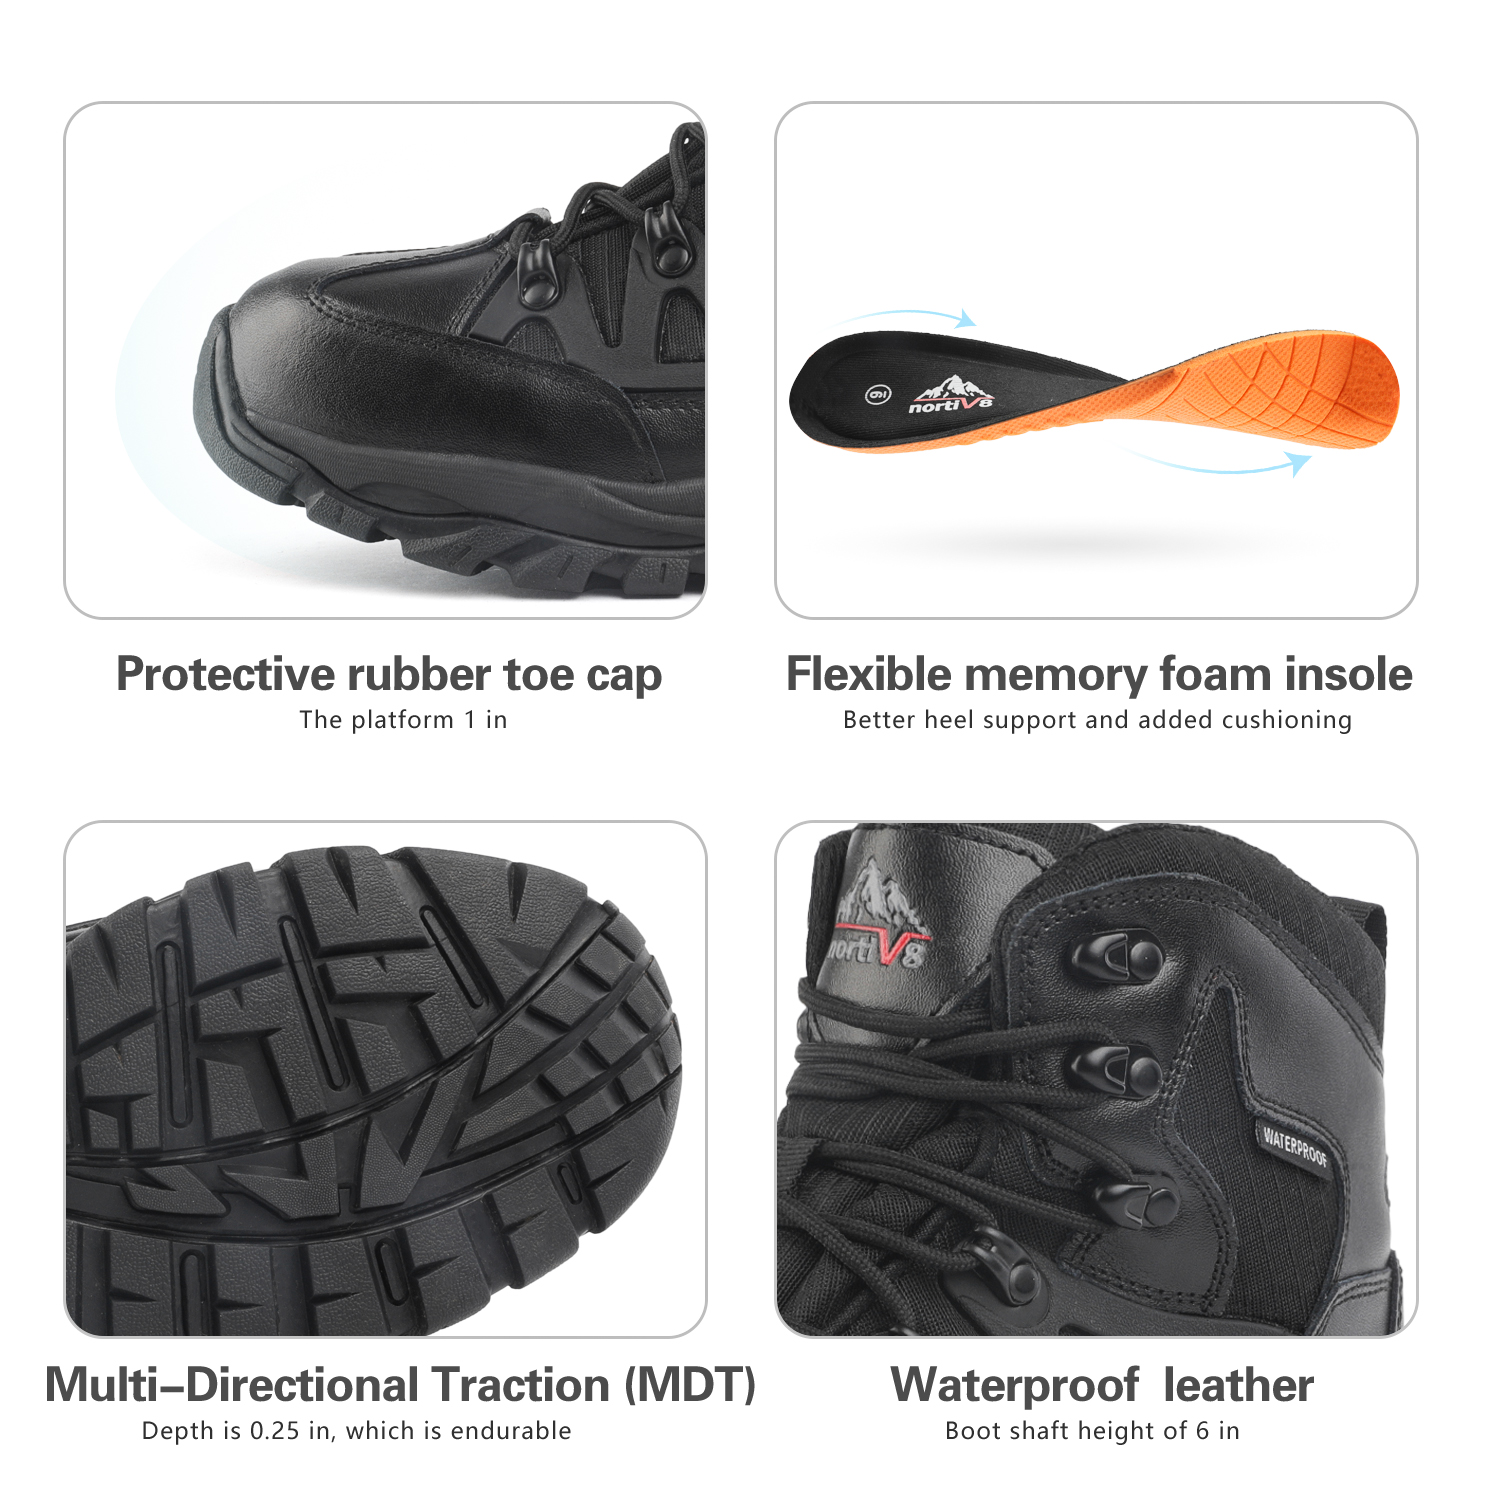 NORTIV-8-Men-039-s-Ankle-Waterproof-Hiking-Boots-Lightweight-Backpacking-Work-Shoes thumbnail 30